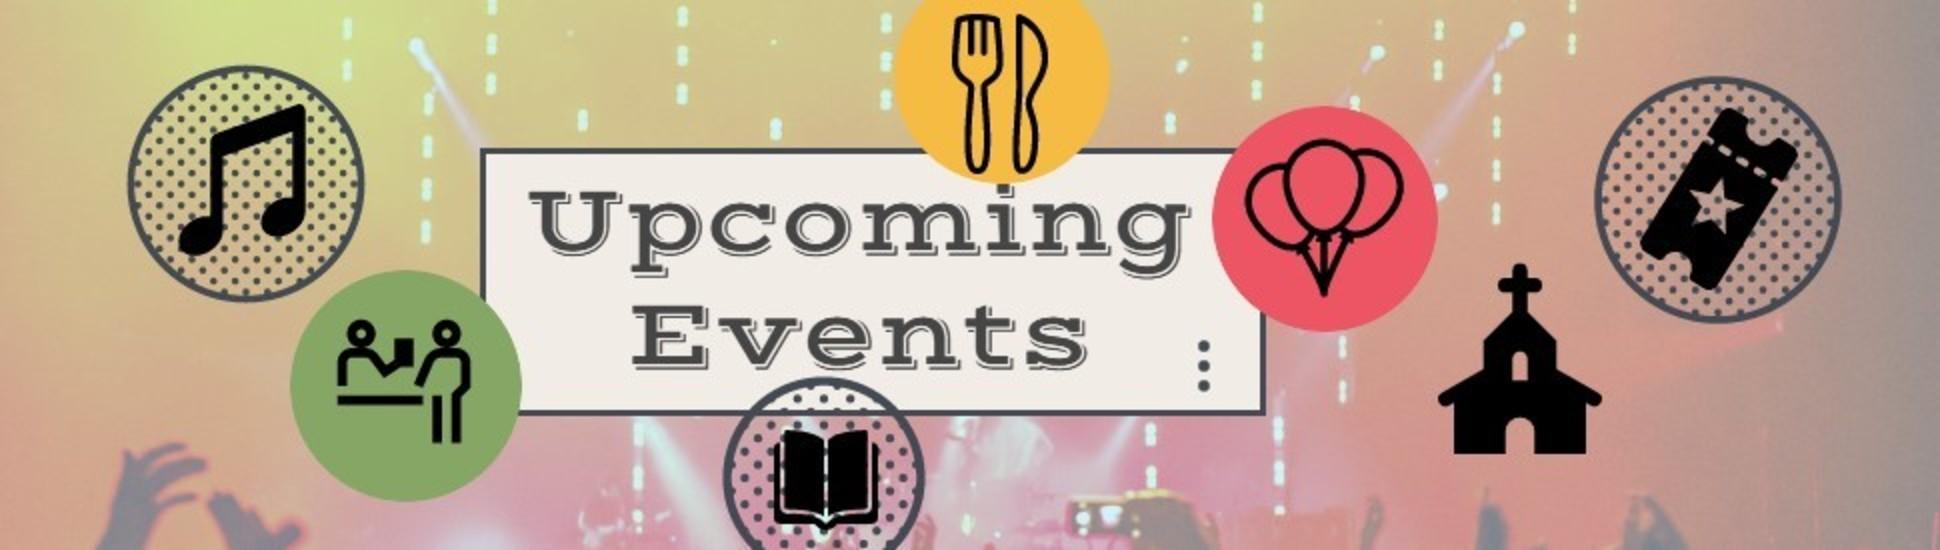 Upcoming Events Rev